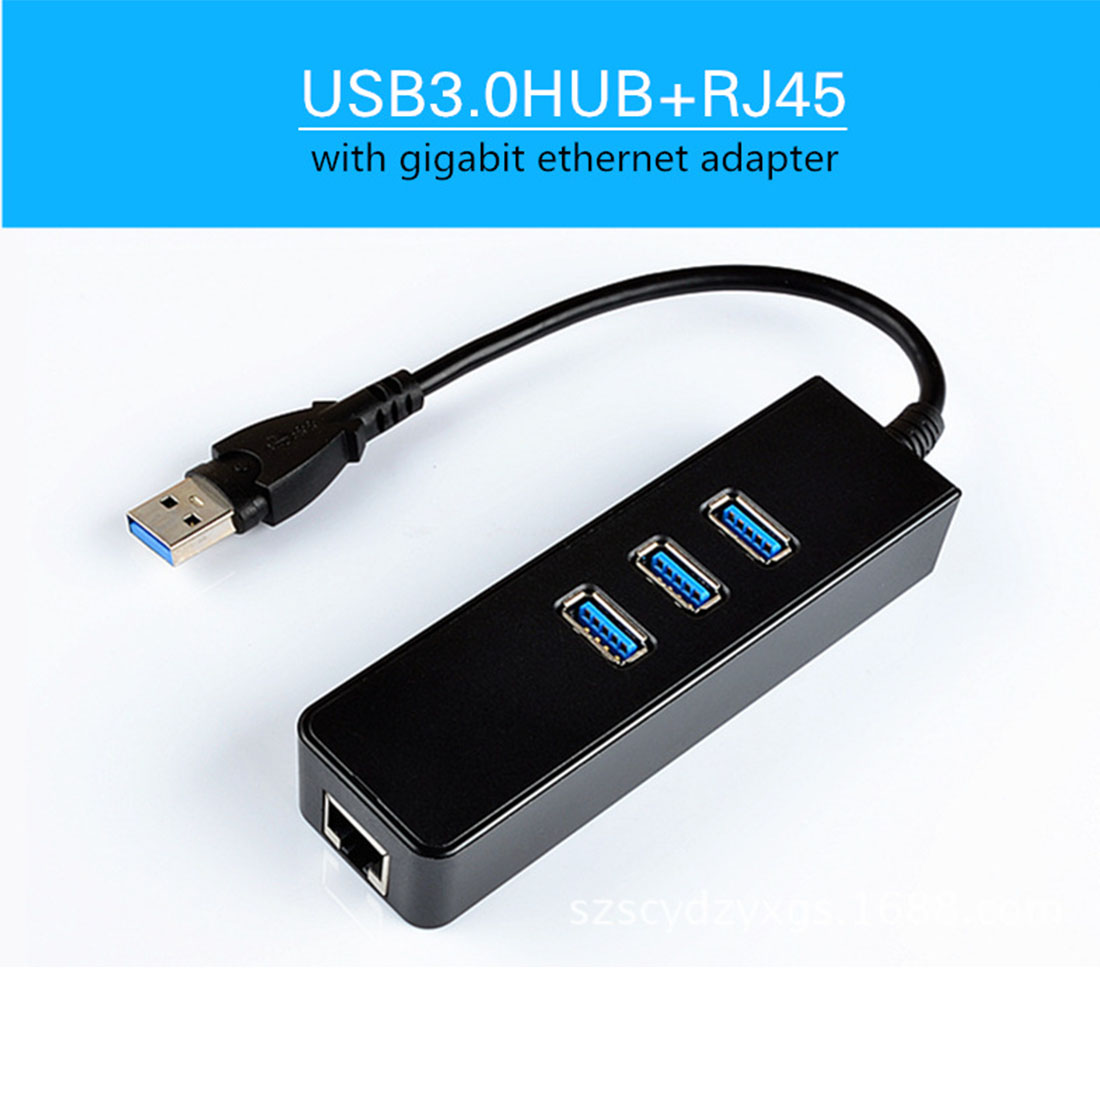 NOYOKERE USB 3.0 1000Mbps Gigabit Ethernet Adapter USB To RJ45 Lan Network Card 3 Port USB3.0 Hub Fo